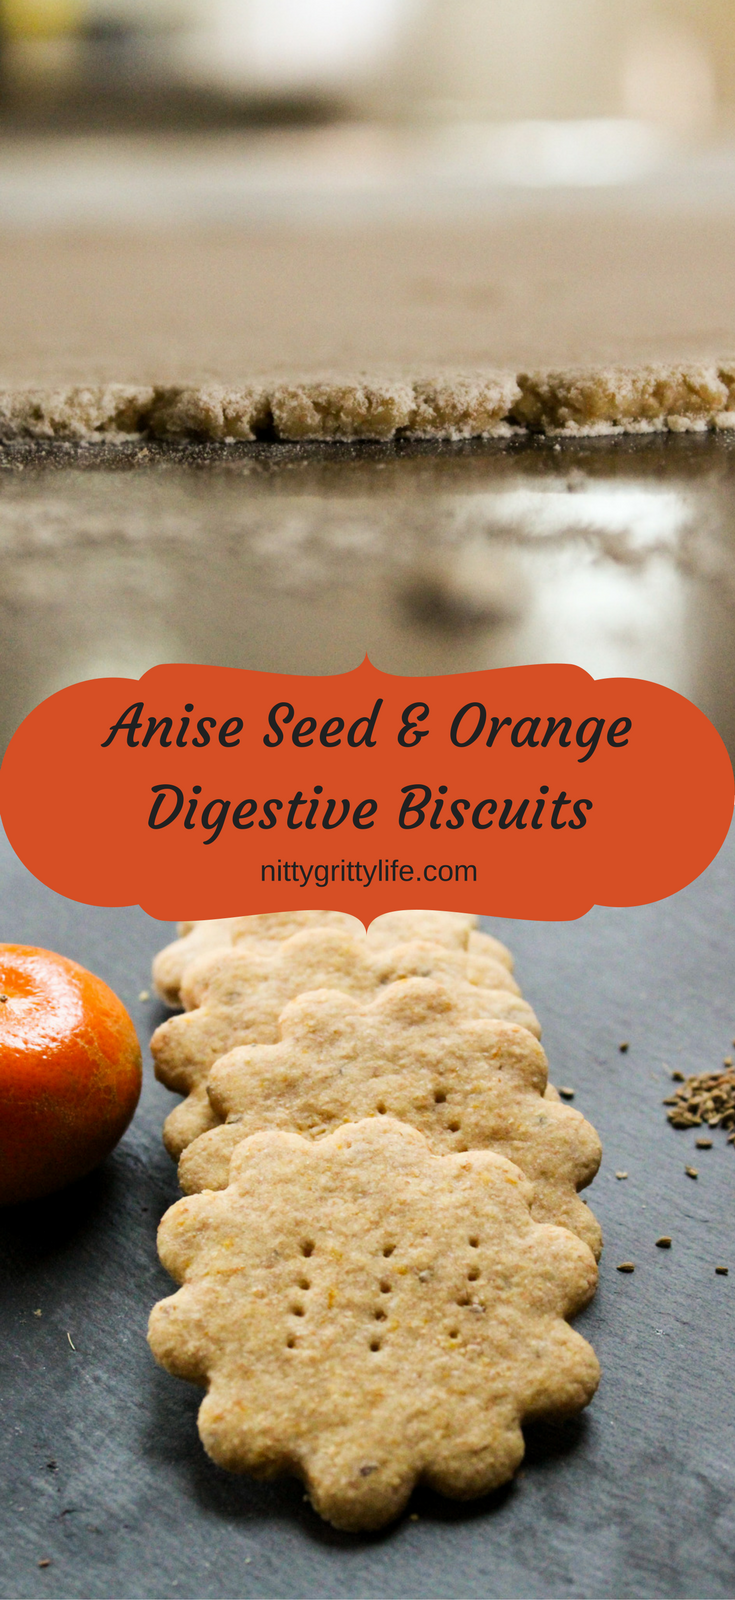 Anise Seed & Orange Digestive Biscuits